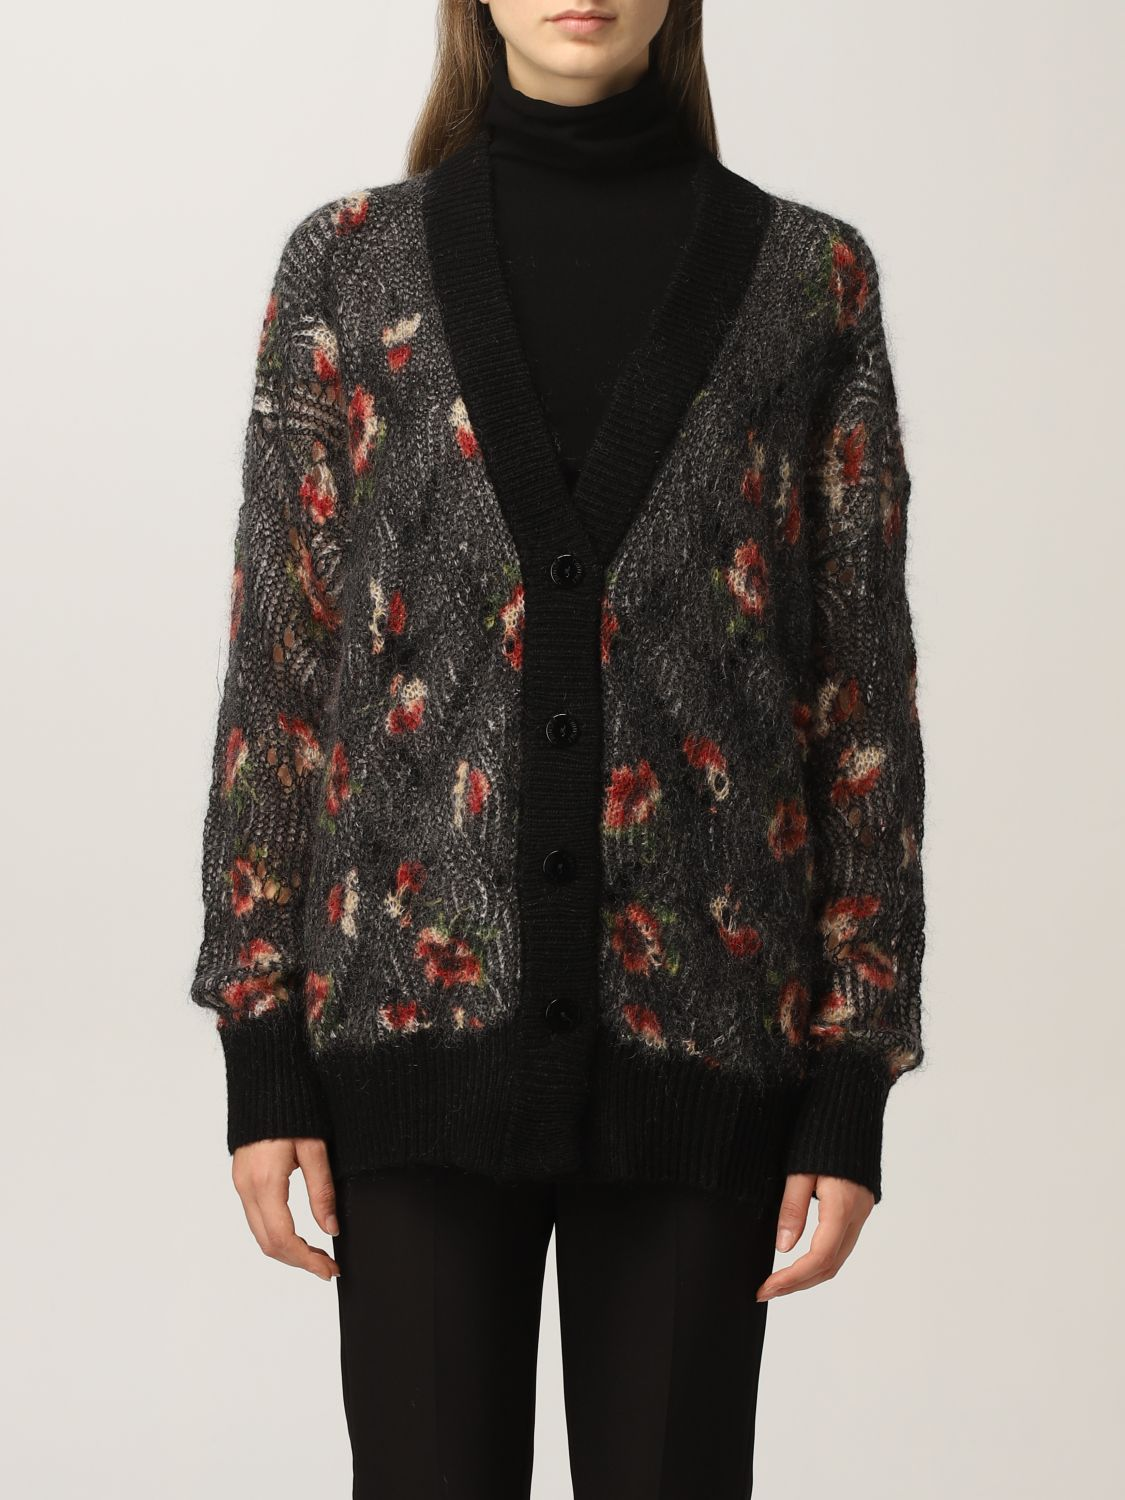 SHOPPING ON LINE TWINSET MILANO CARDIGAN IN MOHAIR STAMPATO NEW COLLECTION PREVIEW FALL WINTER 2022